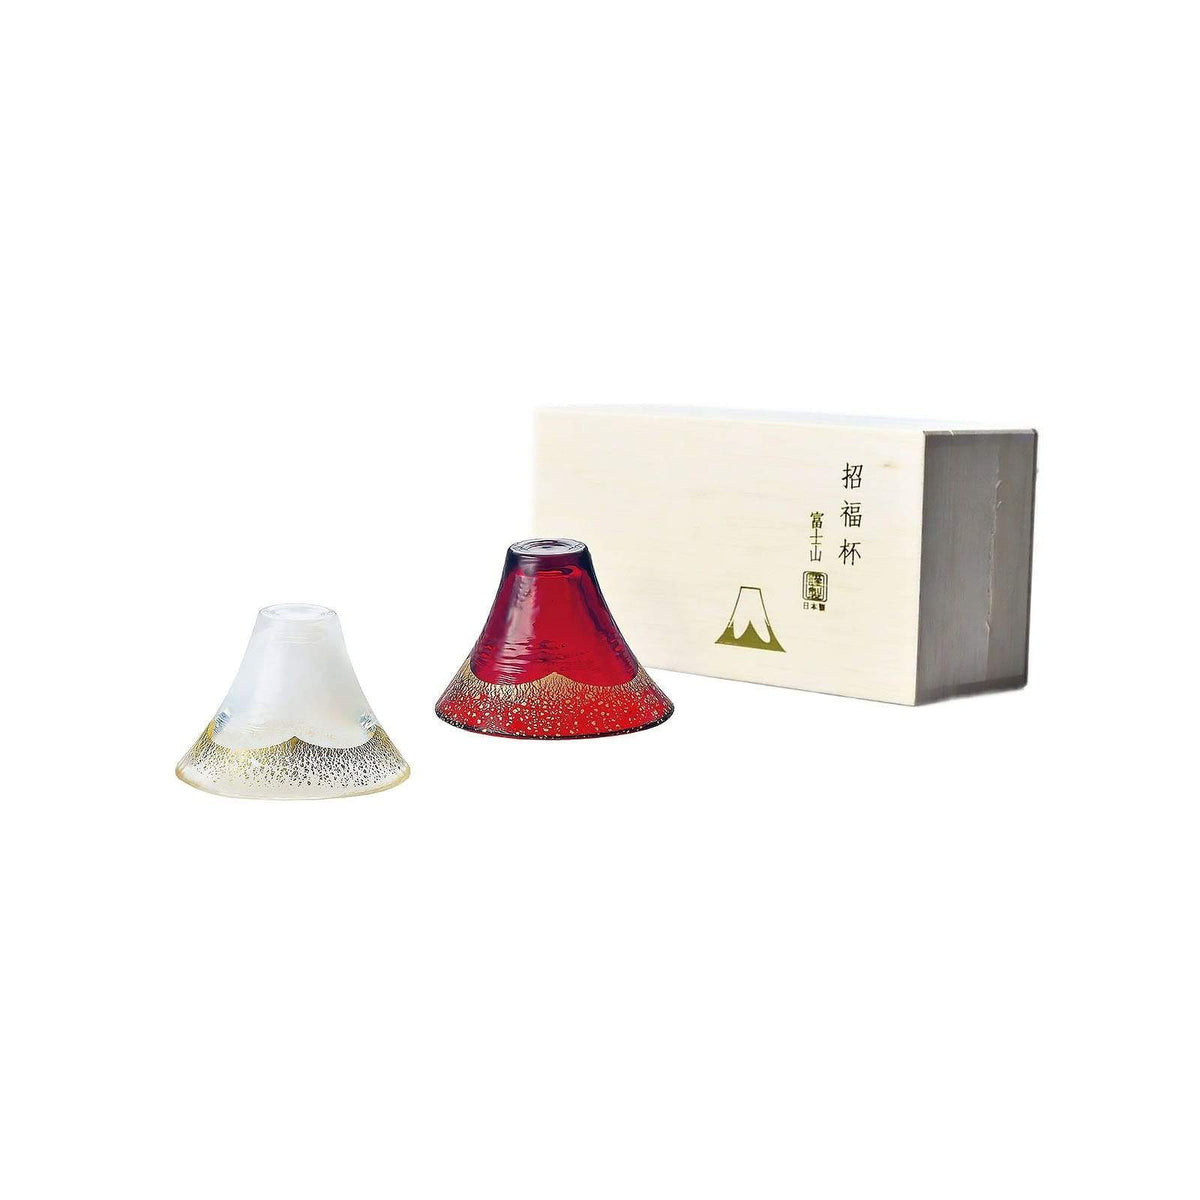 Toyo Sasaki Glass Mt.Fuji Glass Red and White with Gold Sake Cup (Set of 2) Sake Cups